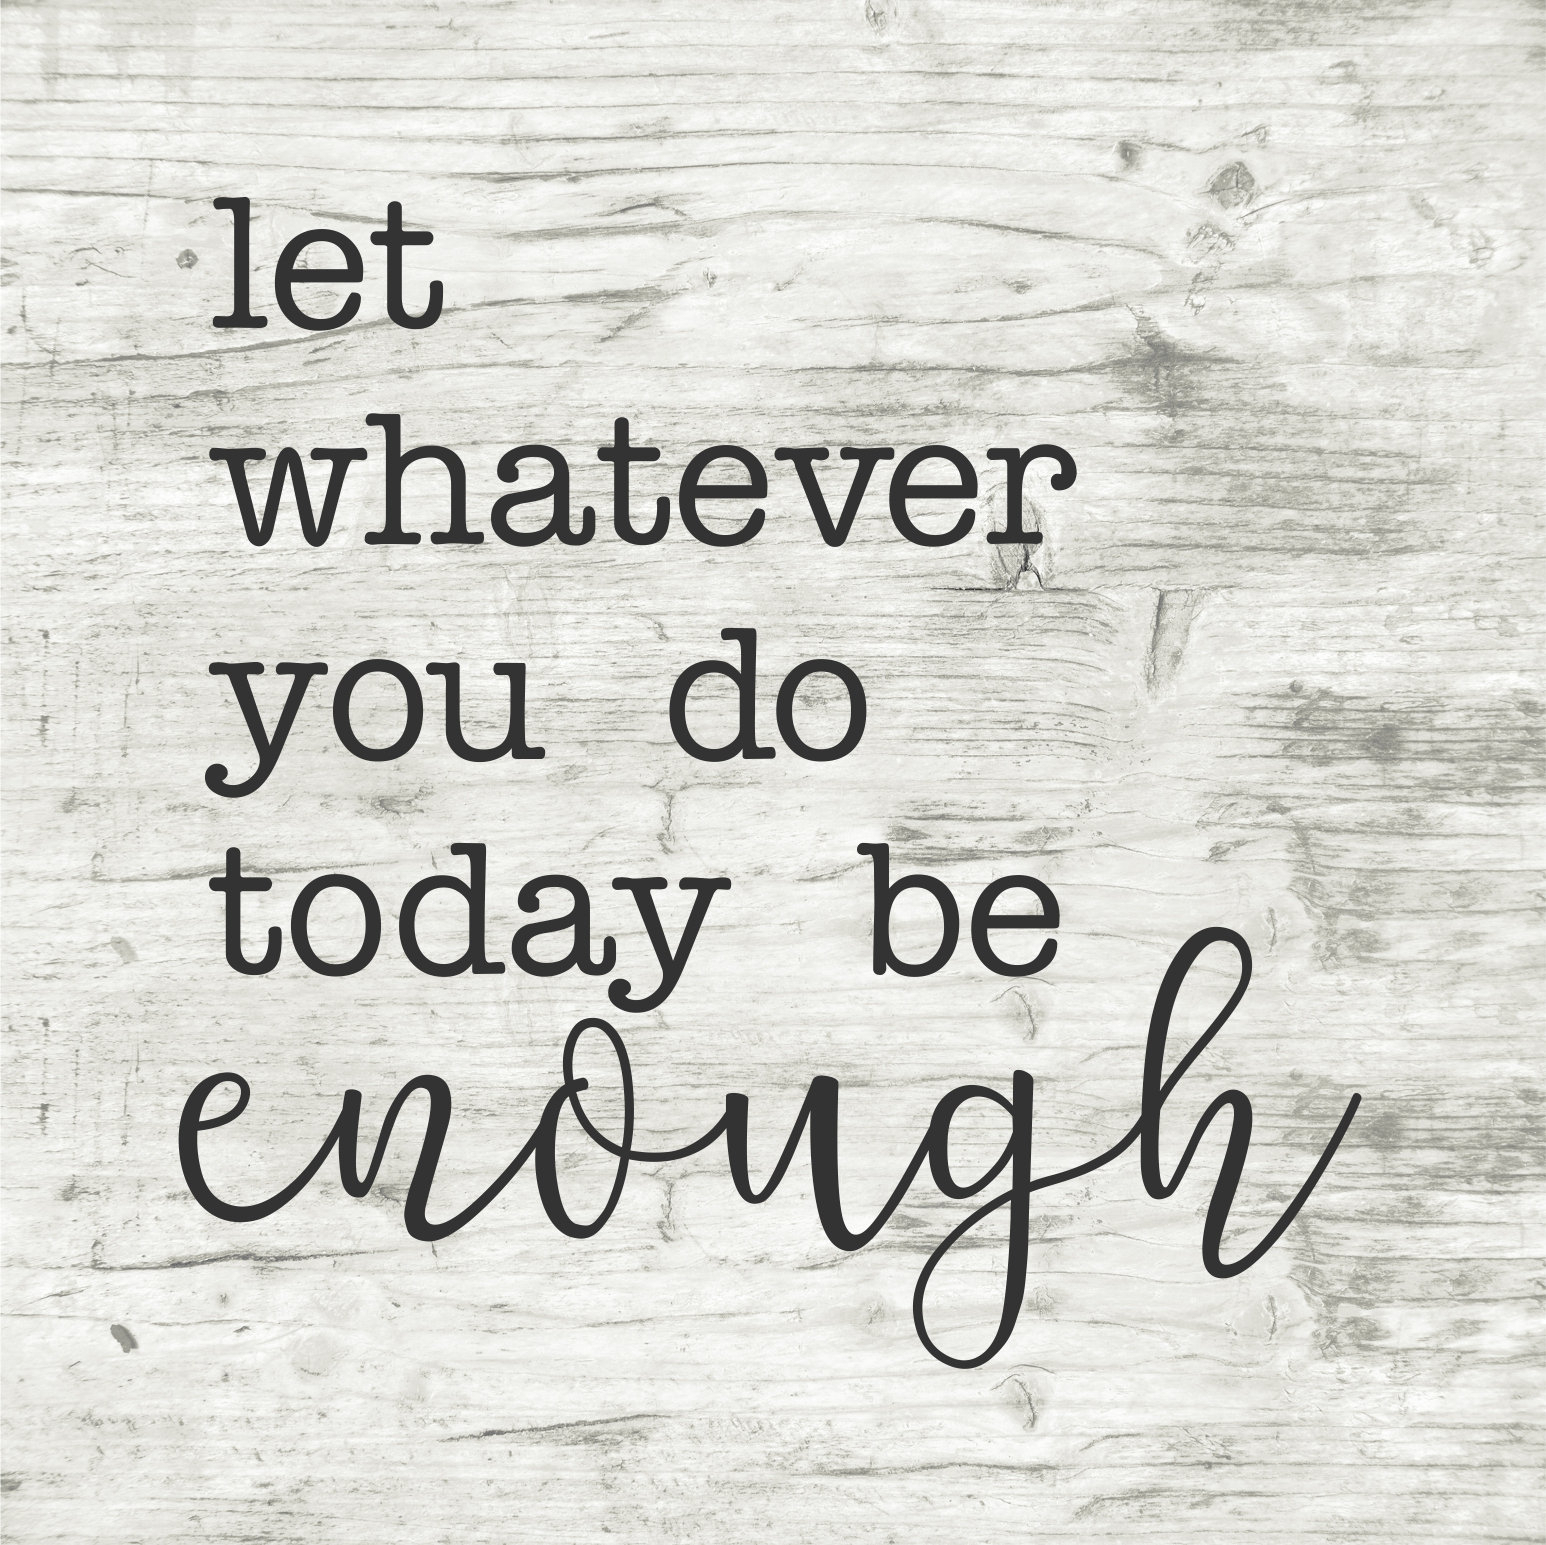 Let Whatever You Do Today Be Enough Vinyl Stencil, Vinyl Stencil, Stencil,  Wood Sign, Wood Crafts, Vinyl, Home Decor, Enough, Positive Vinyl intended for Let Whatever You Do Today Be Enough Wood Wall Decor (Image 14 of 30)